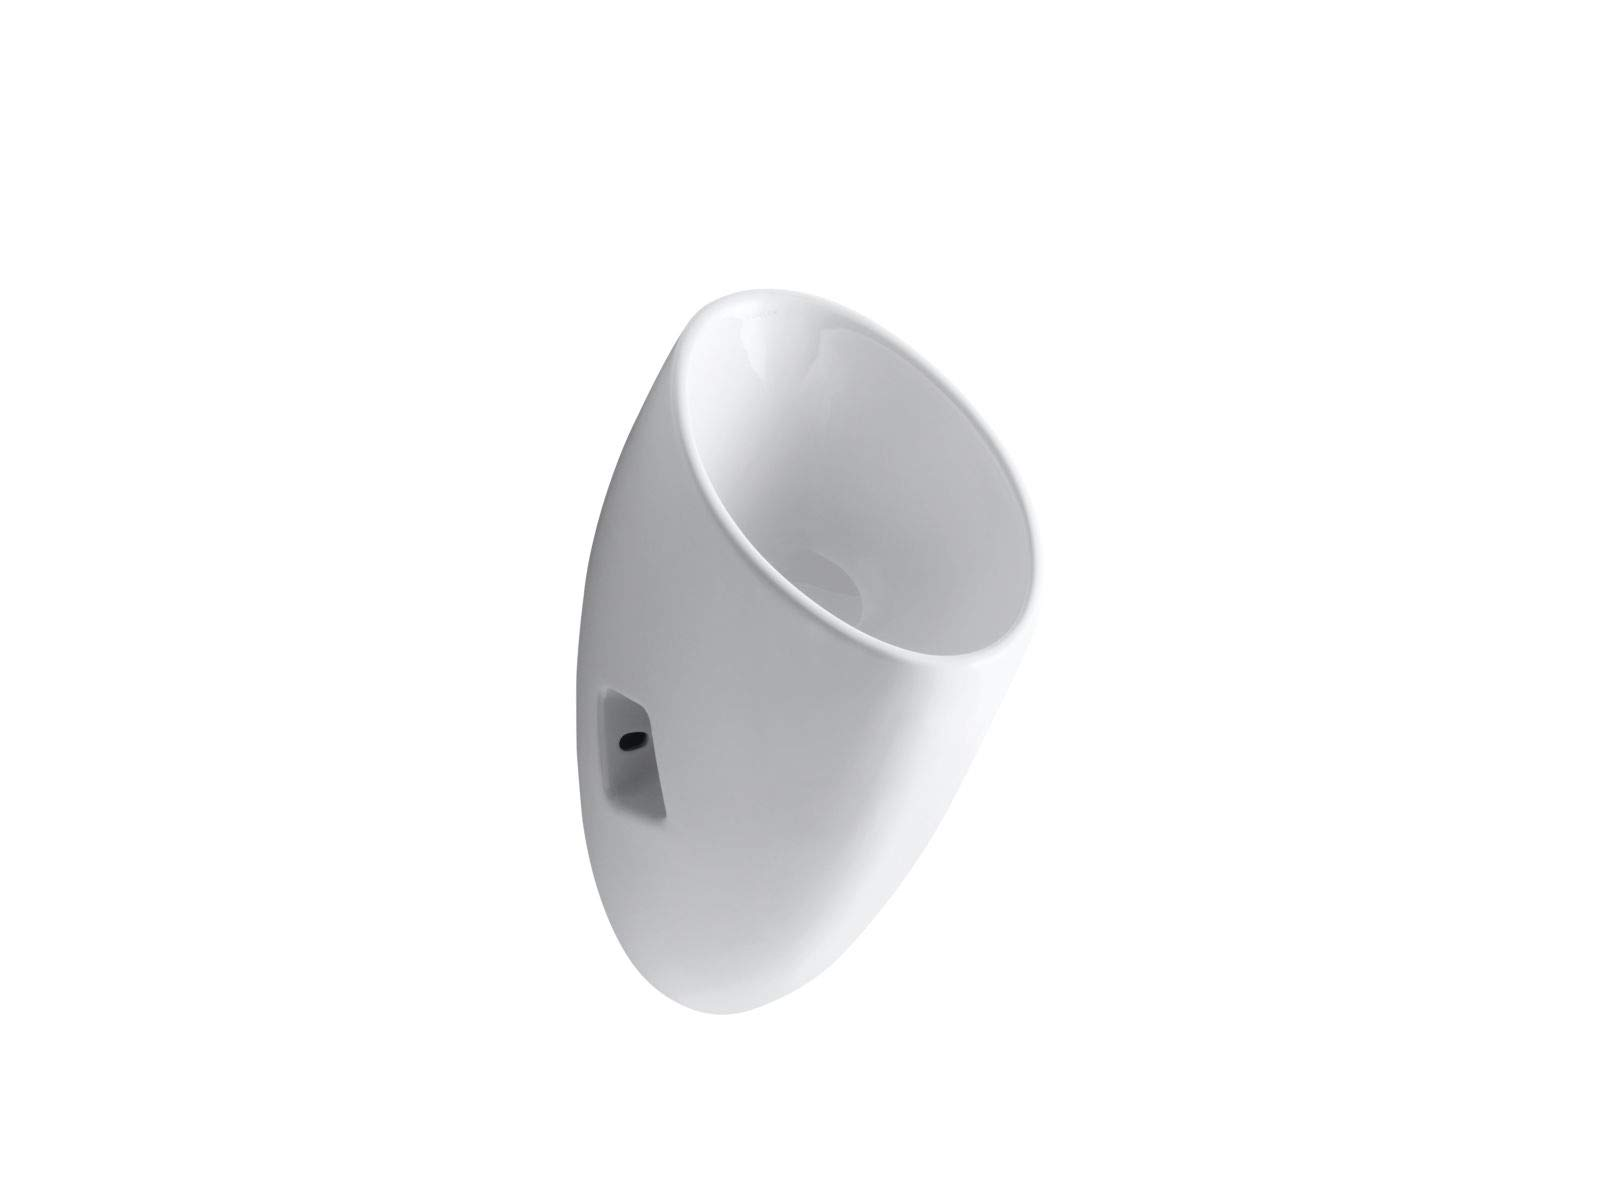 Kohler Steward Wall-Mount Waterless Urinal, White - K-4917-0